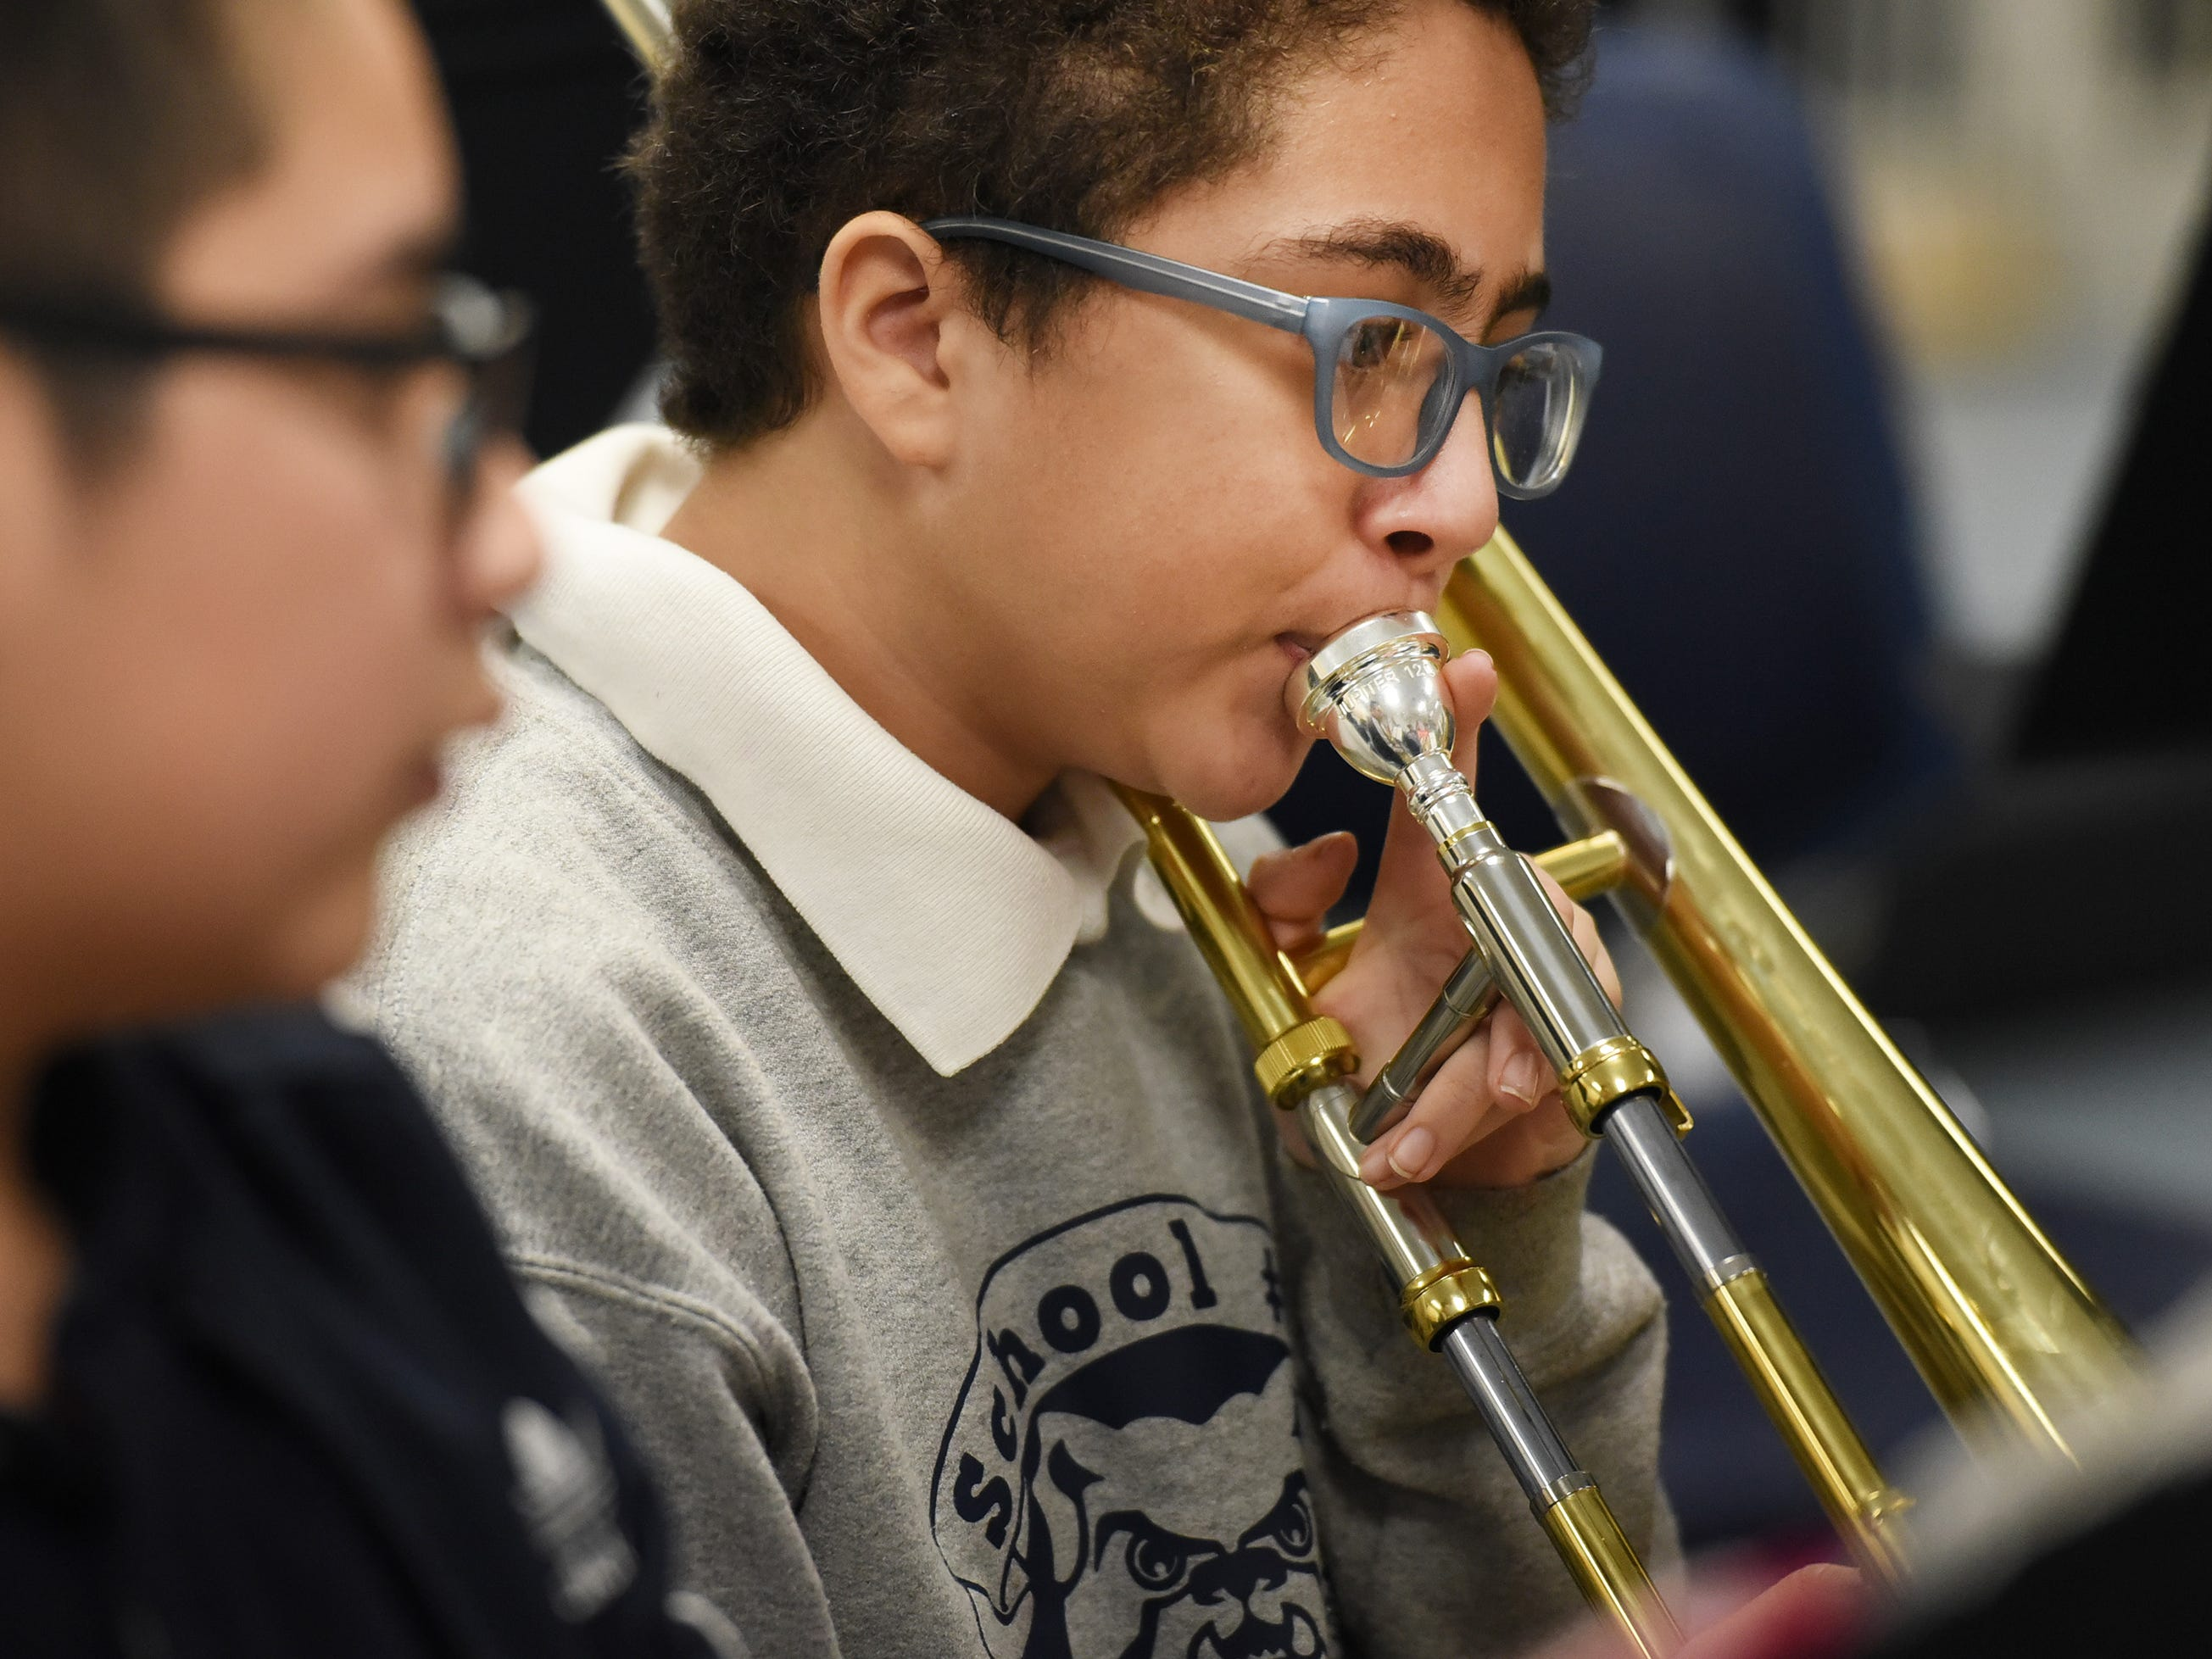 Seventh grader Bryan Castillo plays his trombone as he and his teammates practice led by the Band Director Nancy Horowitz during a music class at School #24 in Paterson on 01/09/19.